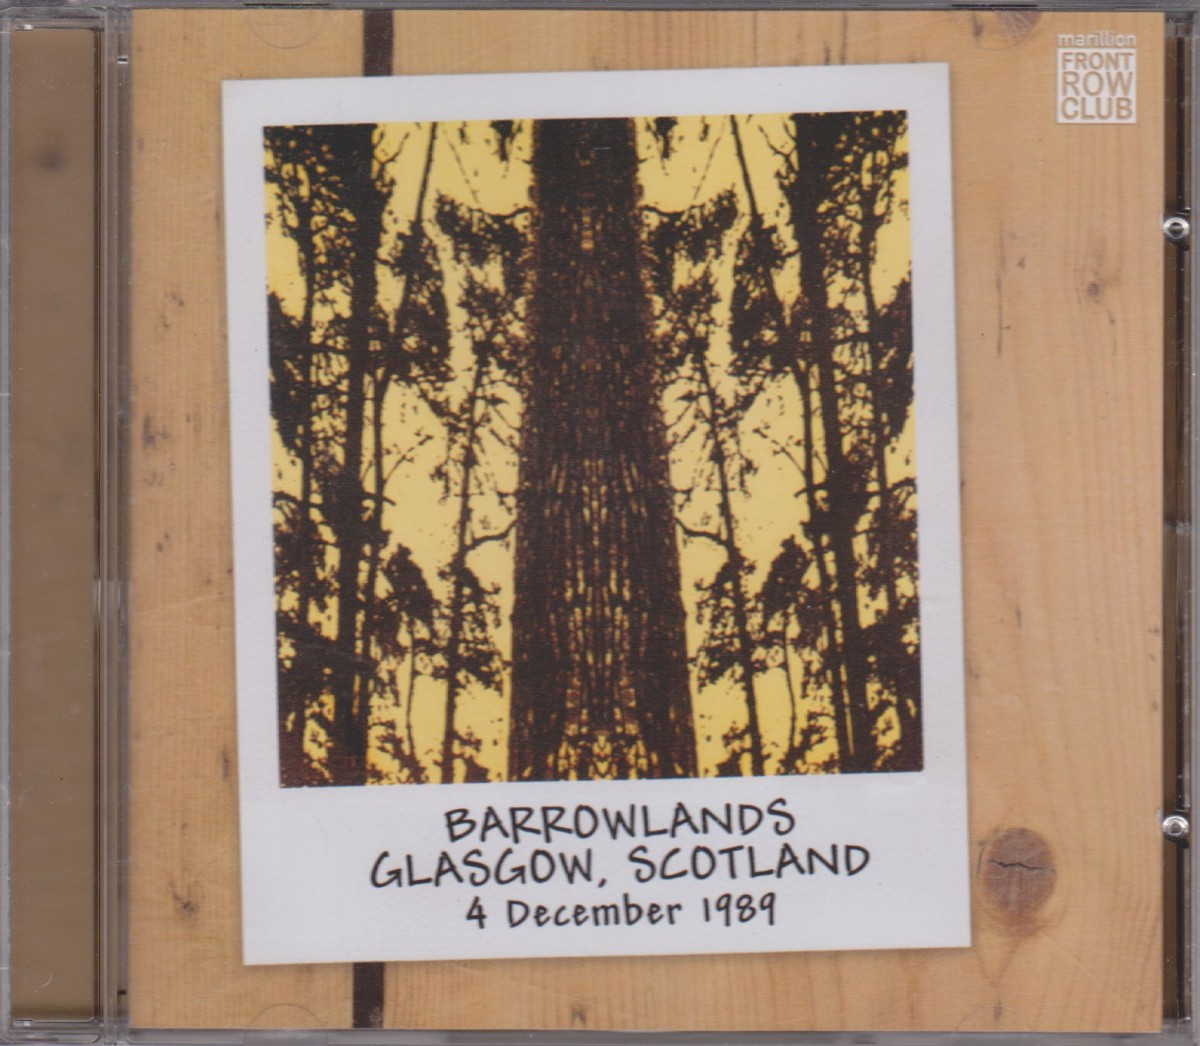 REVIEW:  Marillion - Barrowlands, Glasgow, Scotland. 4 December 1989. (FRC-005)